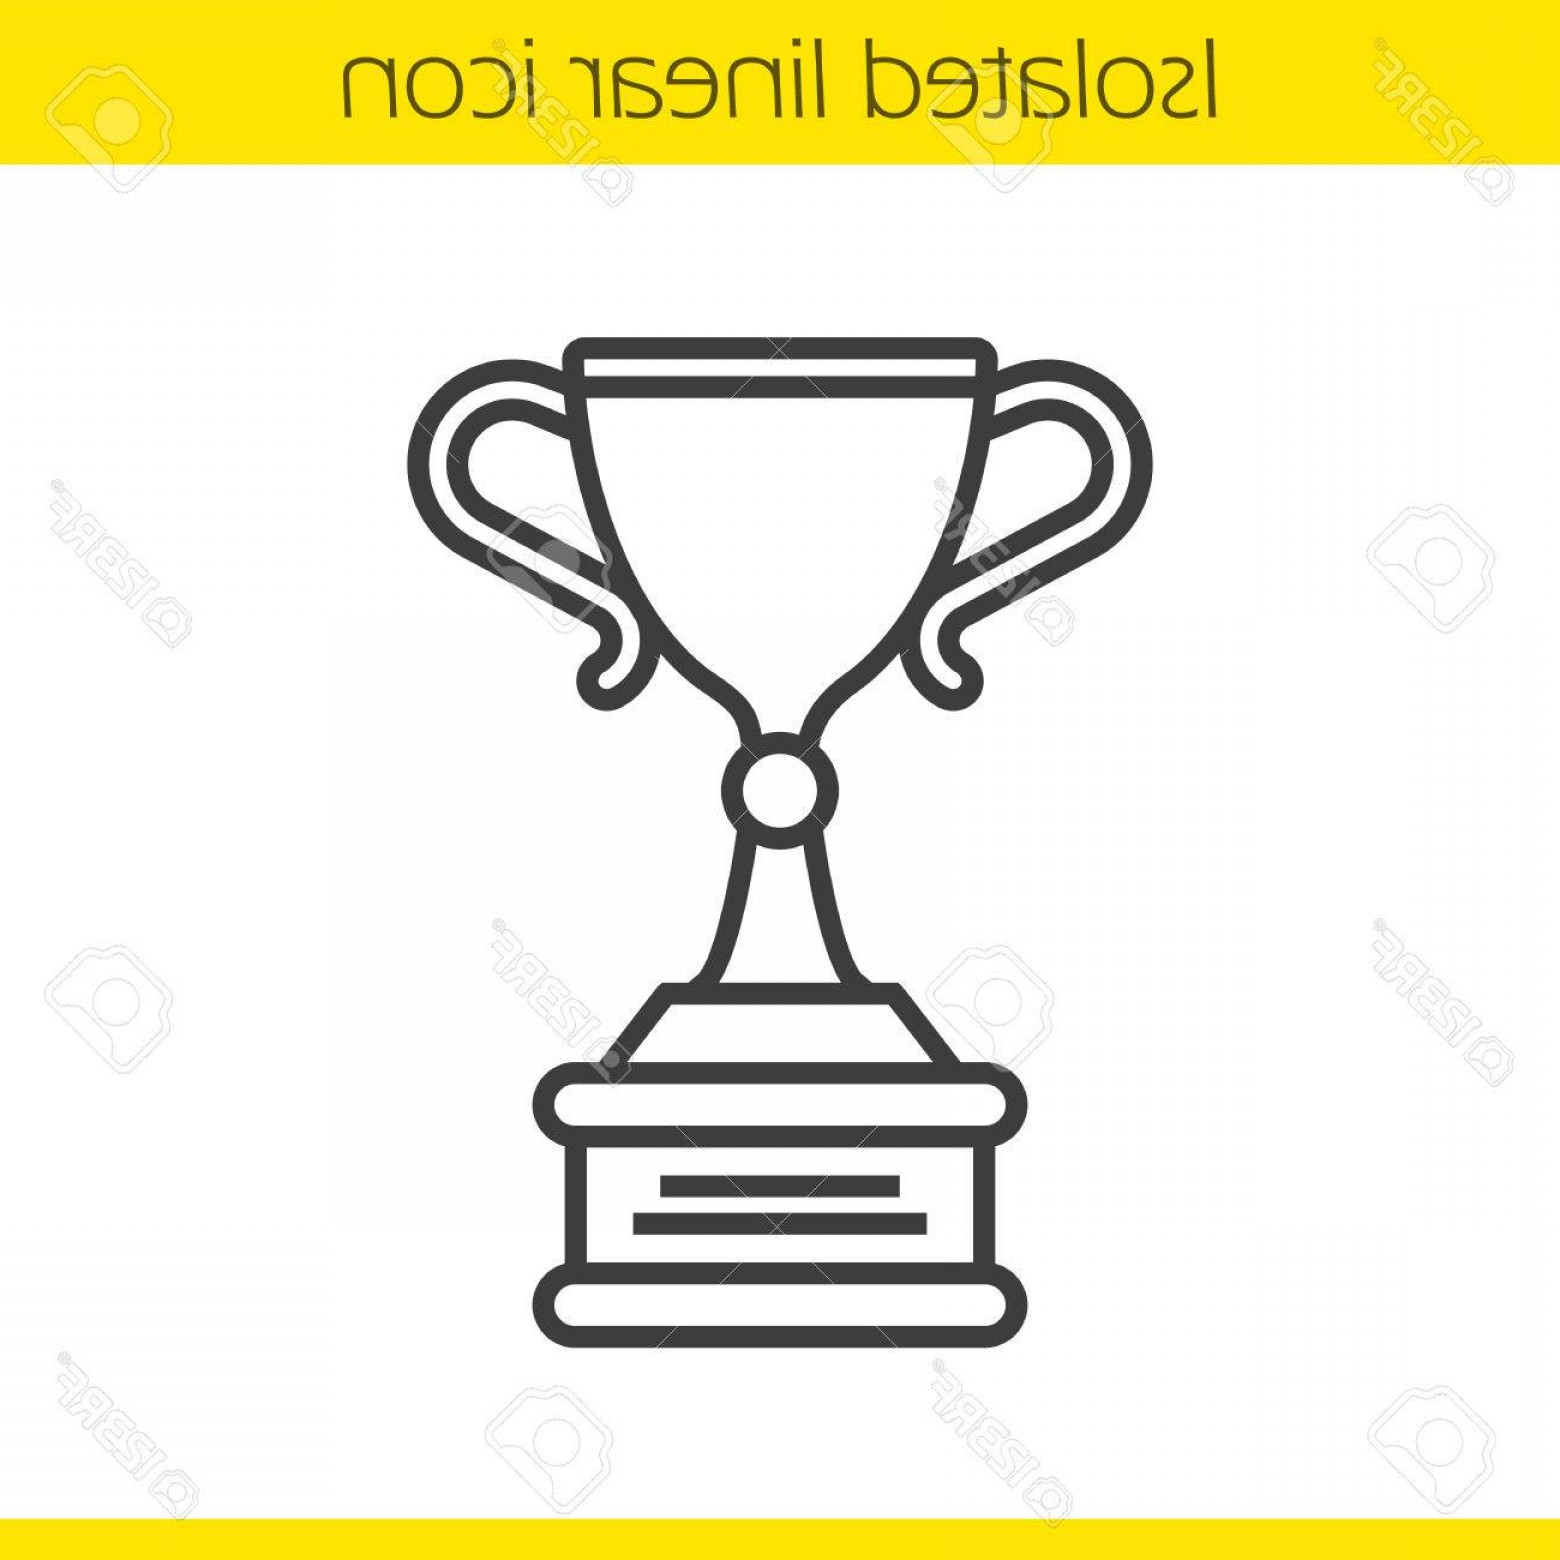 Ice Champions Cup Vector: Photostock Vector Champion Cup Linear Icon Thin Line Illustration Ice Hockey Championship Winner S Award Contour Symbo